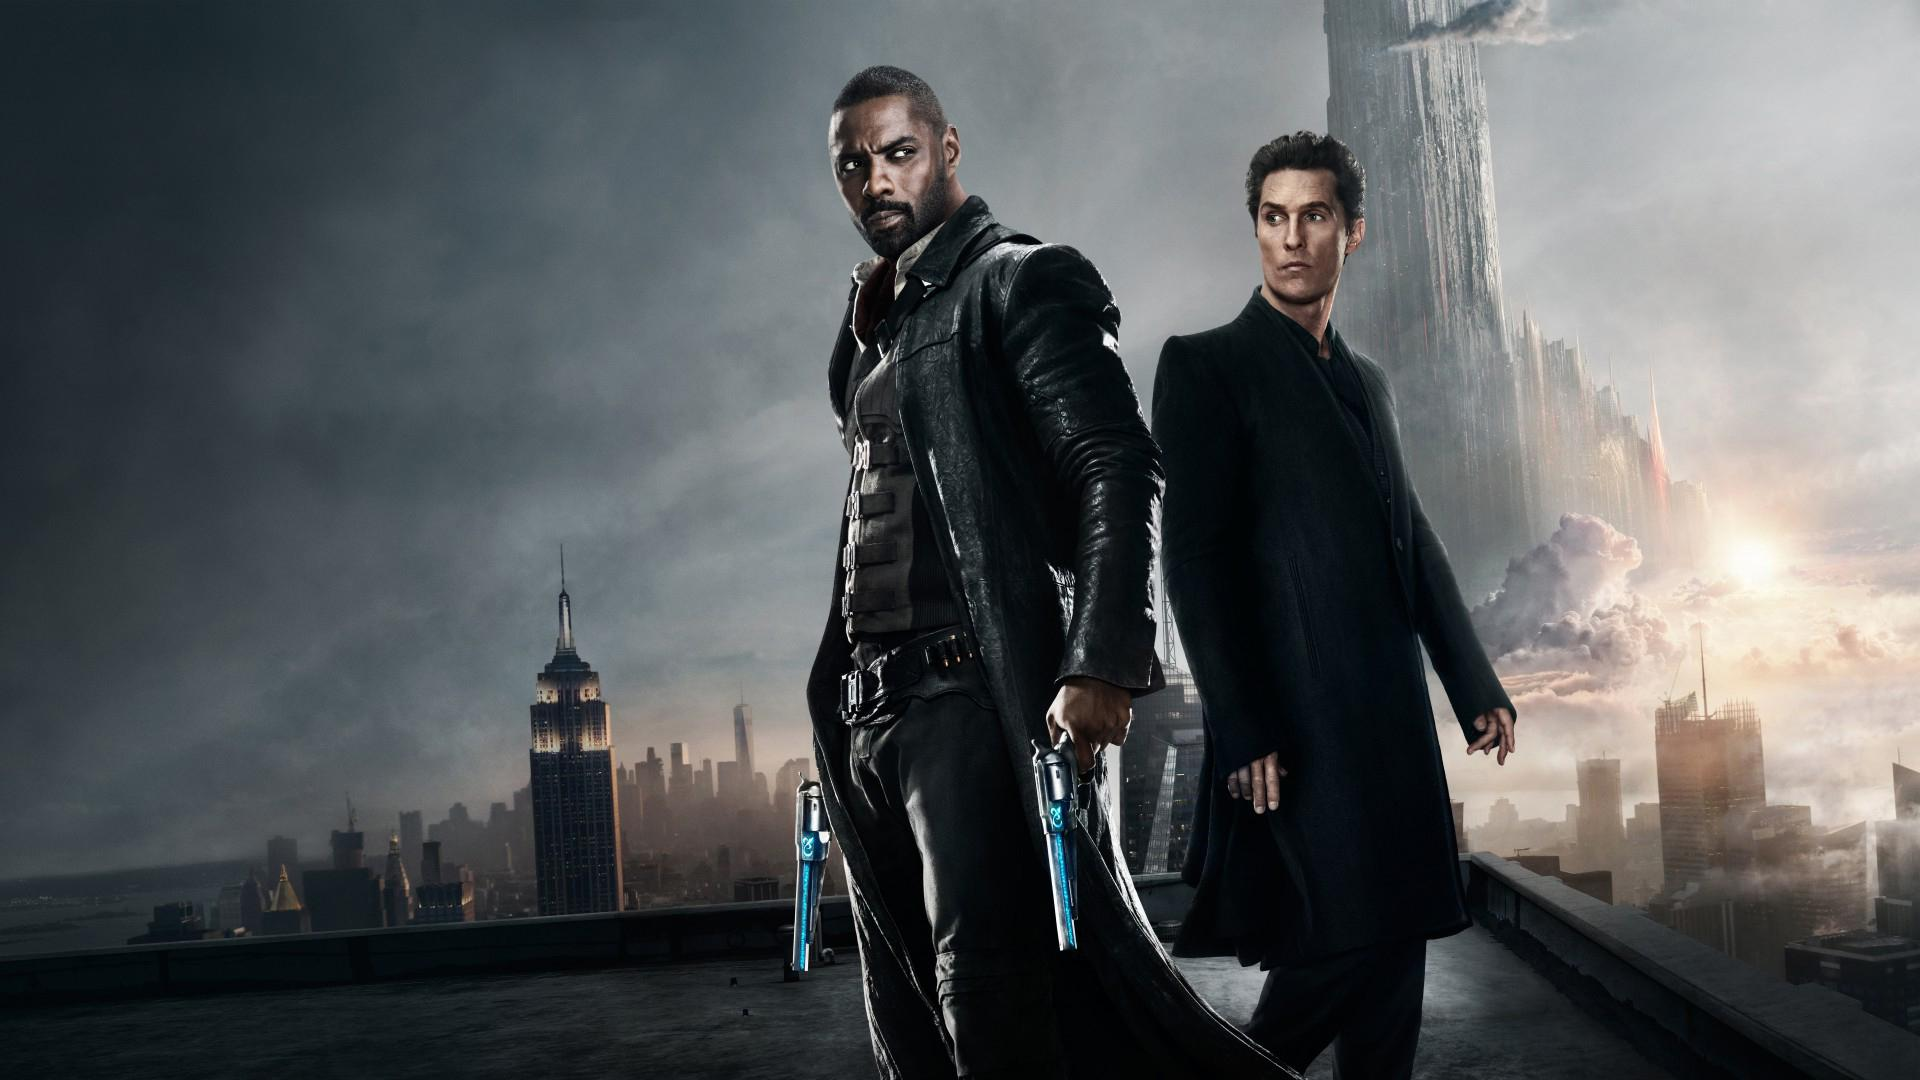 مشاهدة فيلم The Dark Tower (2017) مترجم HD اون لاين